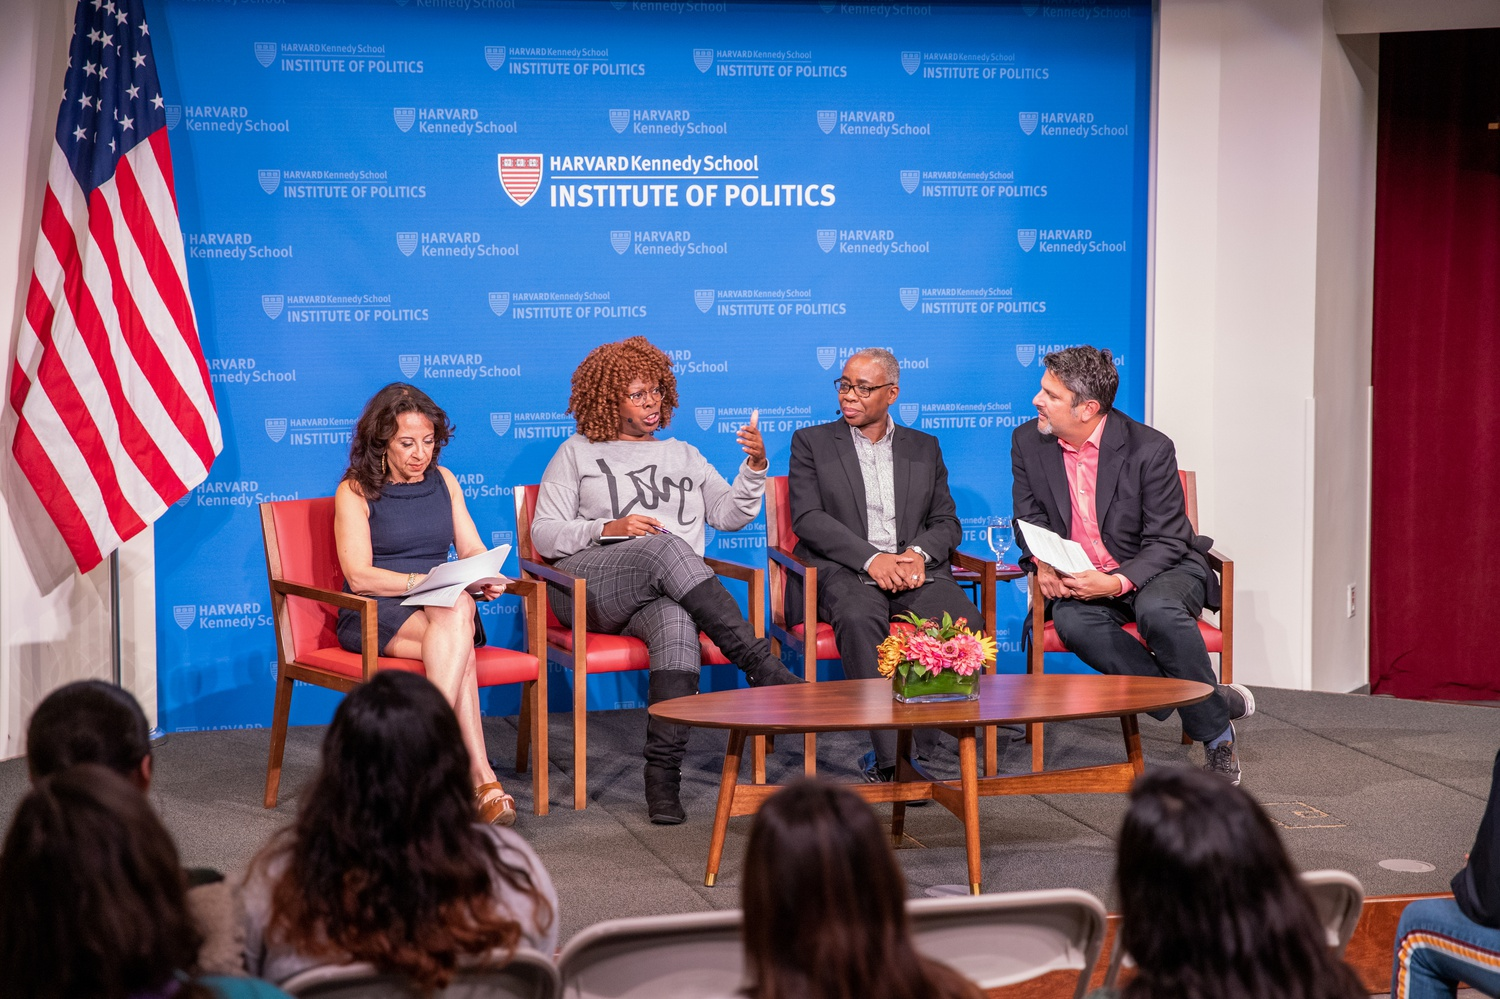 At the Institute of Politics on Tuesday evening, Maria Hinojosa, Julio Ricardo Varela,LaTosha Brown and Renée Graham discussed the current engagement of communities of color within the 2020 election and the important role that these communities have in shaping the next four years of the country.